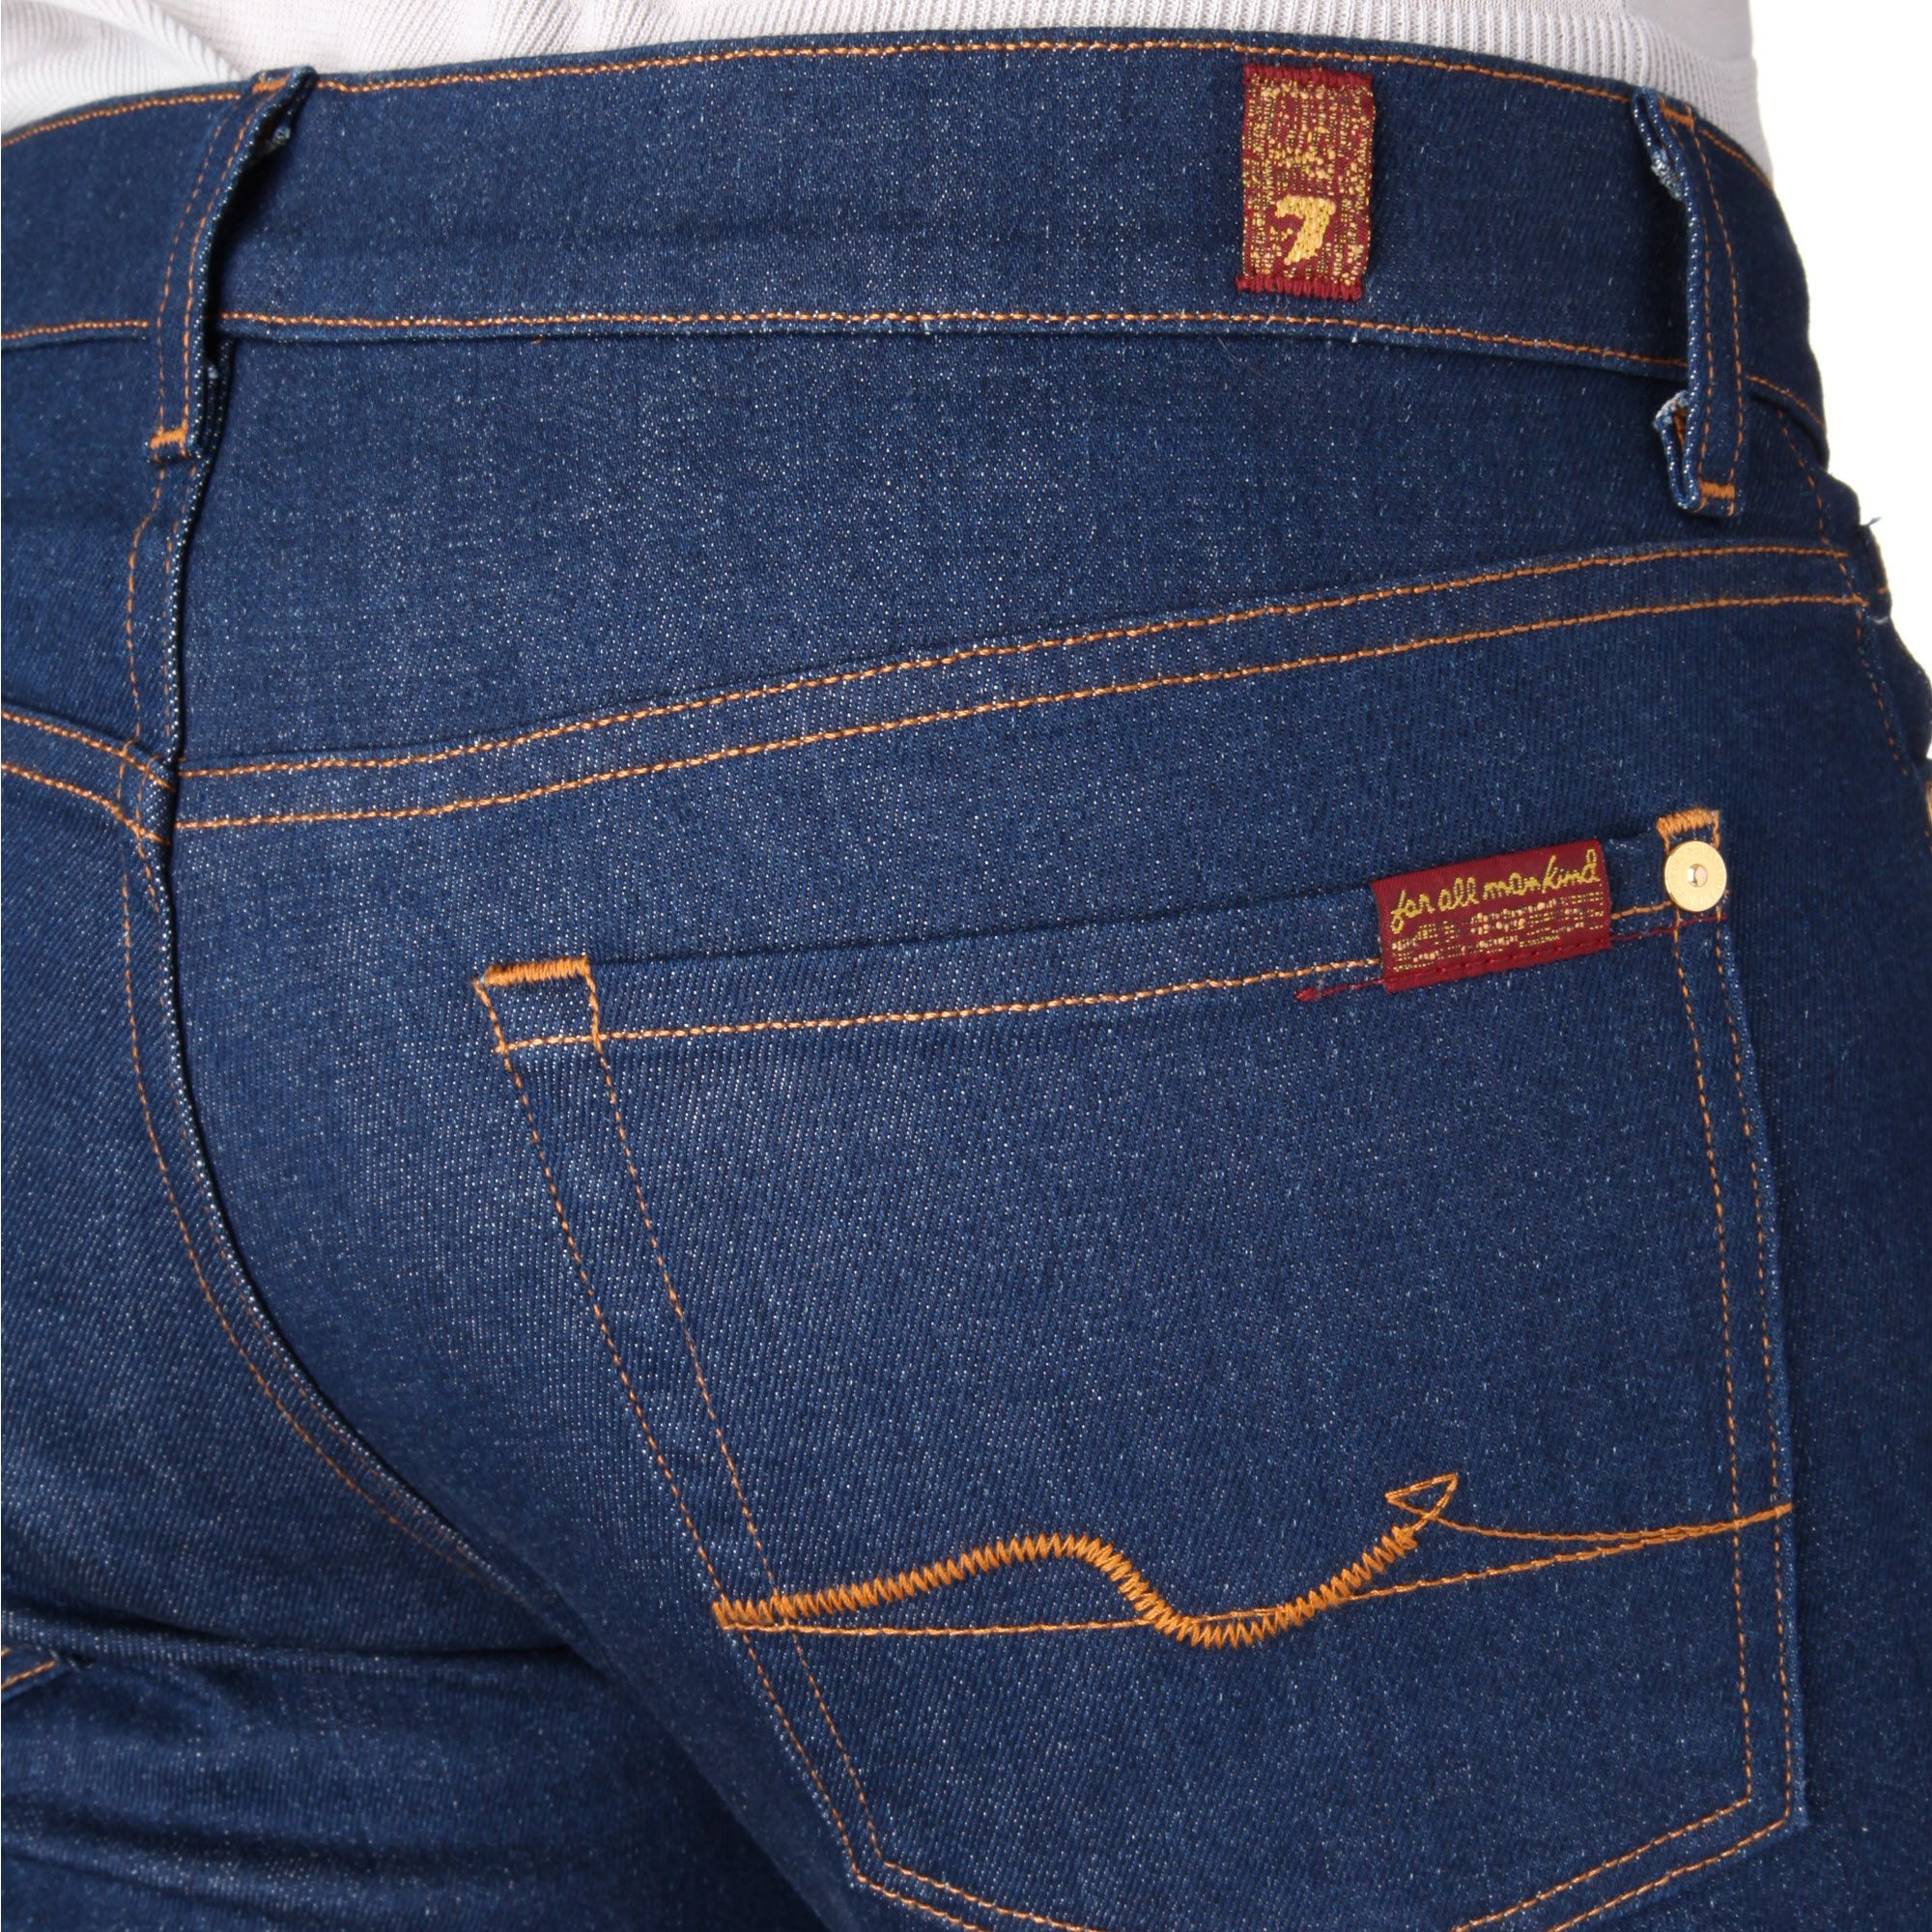 7 For All Mankind Cotton Slimmy Straight Leg Jean in Sky (Blue) for Men